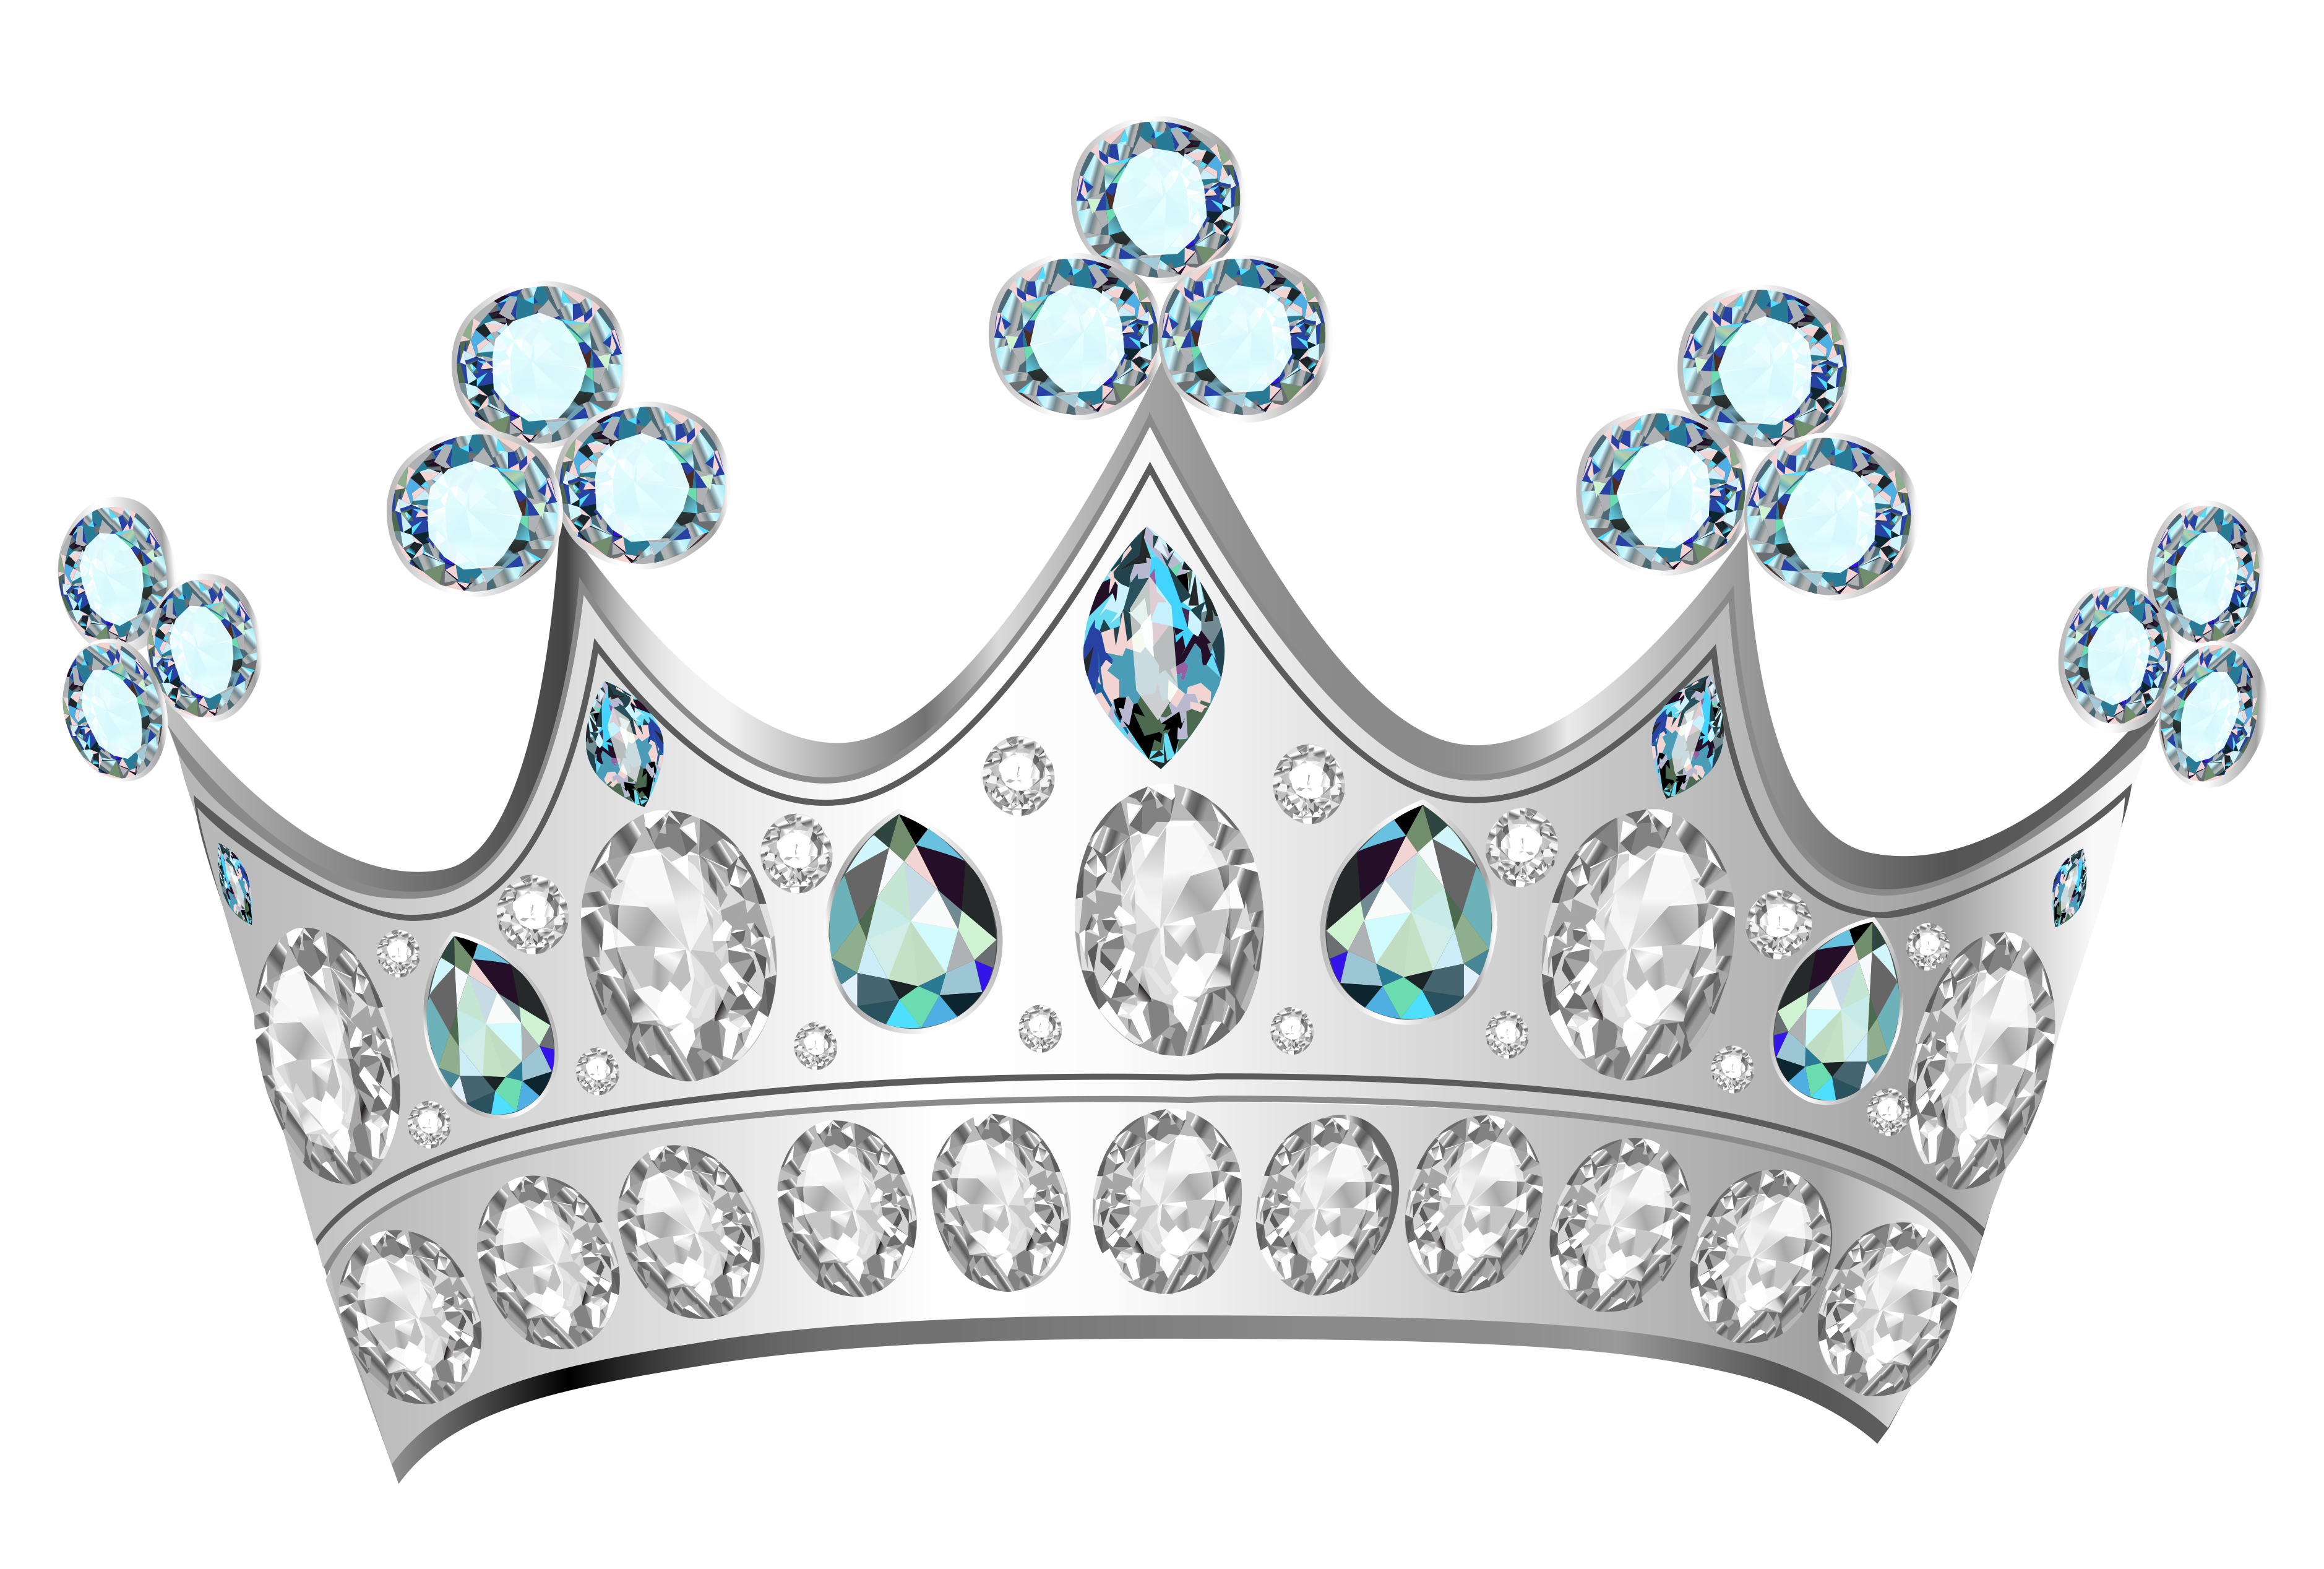 Queen crown png. Diamond clipart picture gallery